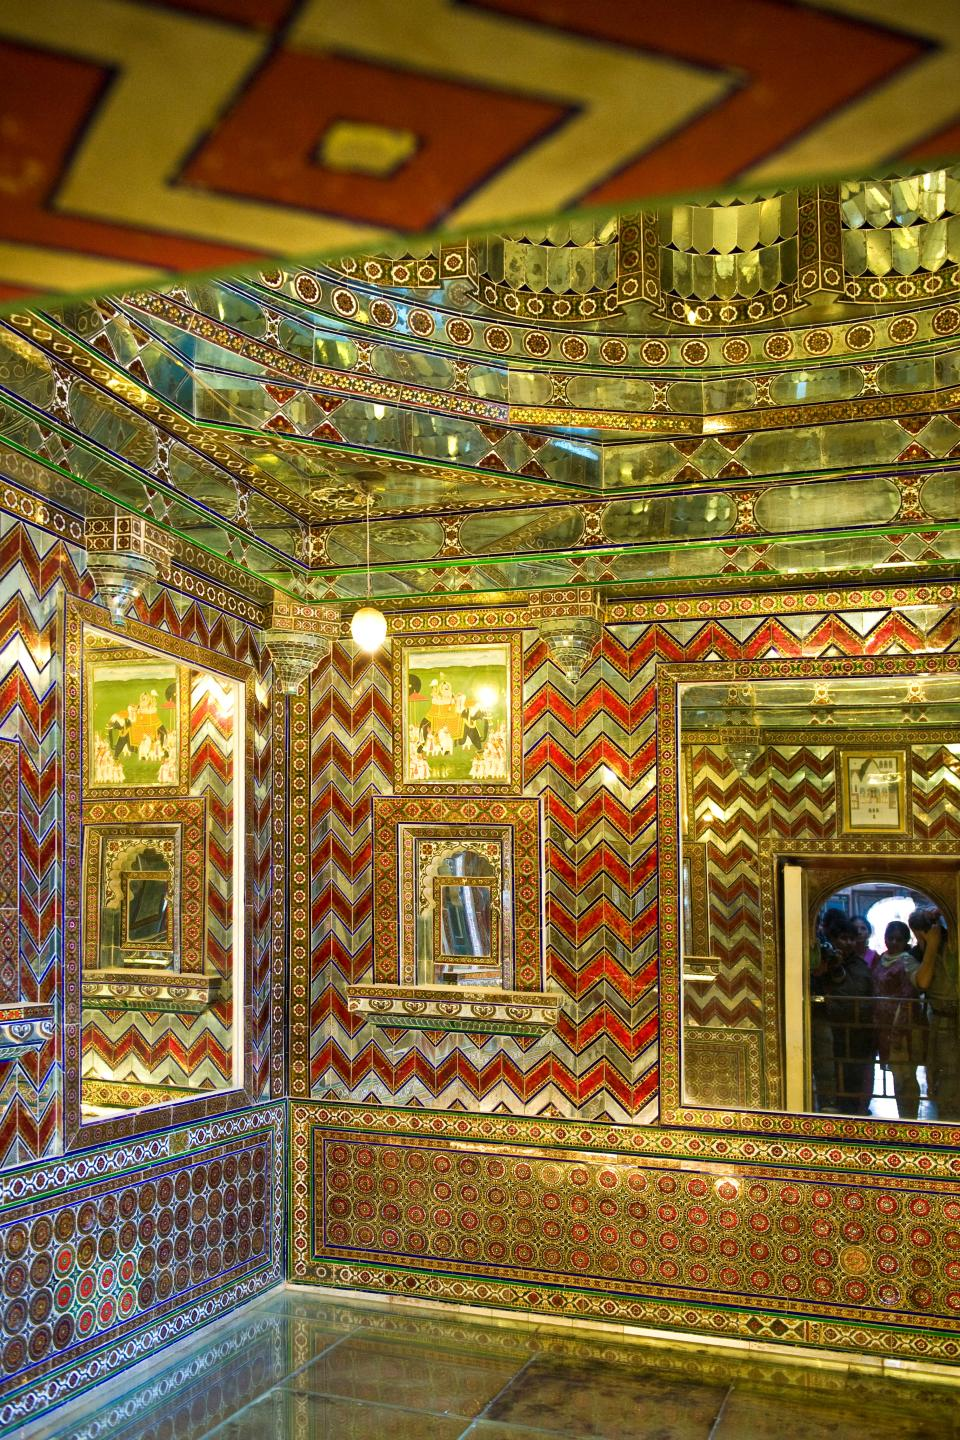 In an adjoining chamber, called the Kanch-ki-Burj, mosaics of mirrors adorn the walls. The Badi Charur Chowk within this chowk is a smaller court for private use. Its screen wall has painted and inlaid compositions depicting European men and Indian women.